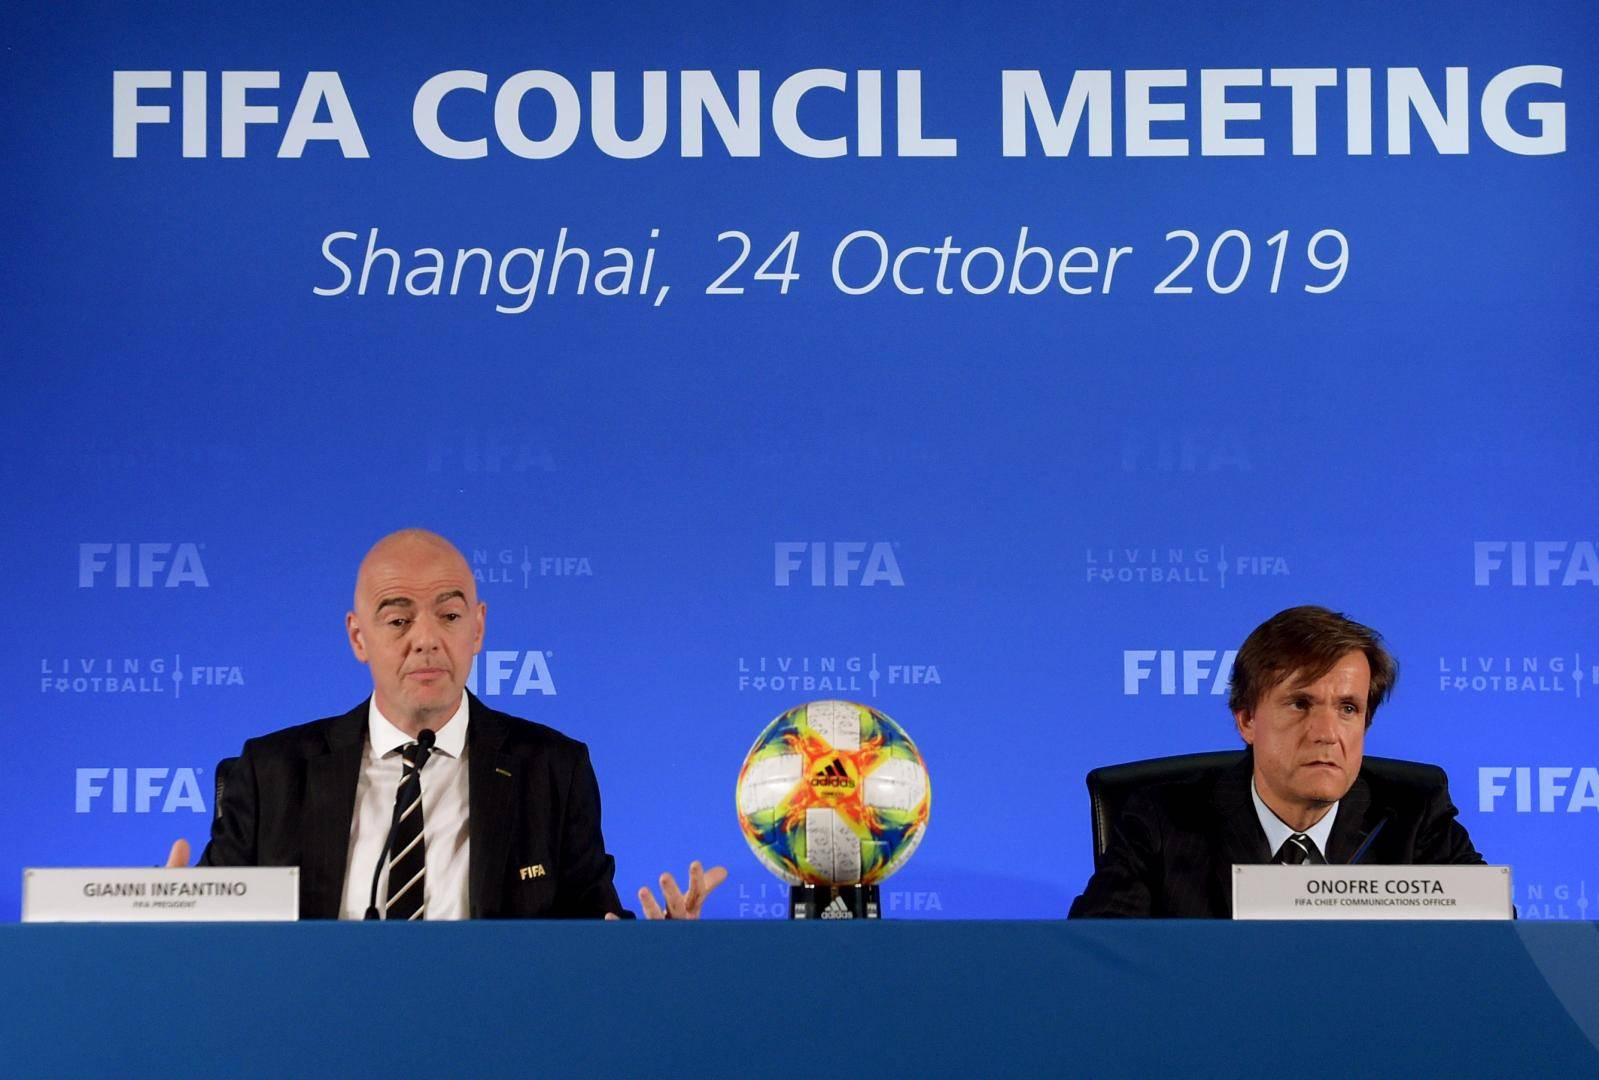 FIFA President Gianni Infantino and Chief Communications Officer Onofre Costa attend the association's council meeting in Shanghai